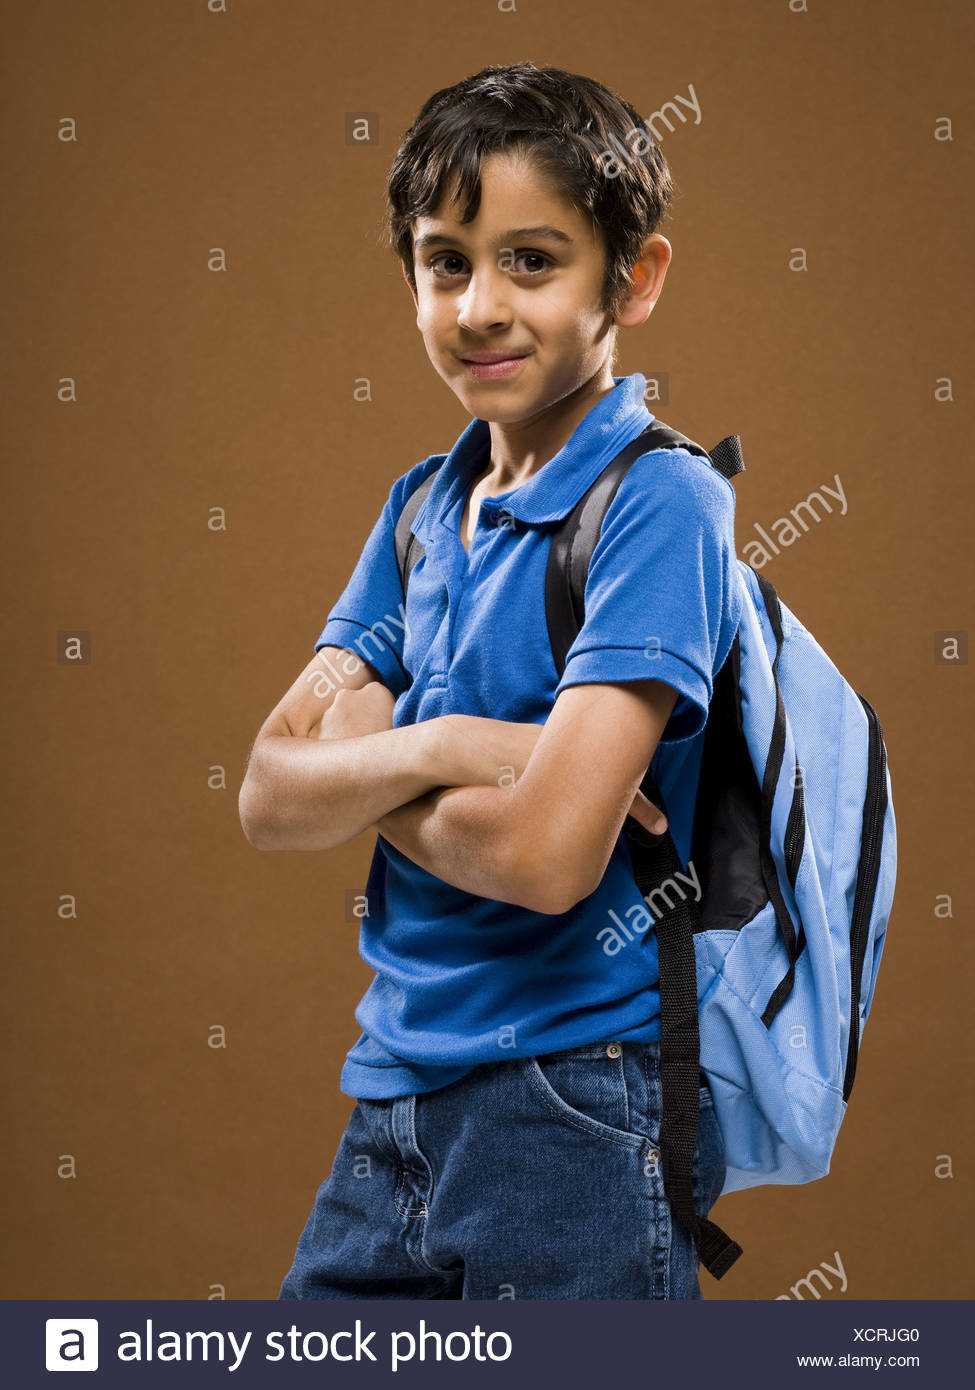 Boy standing with arms crossed and backpack smiling - Stock Image